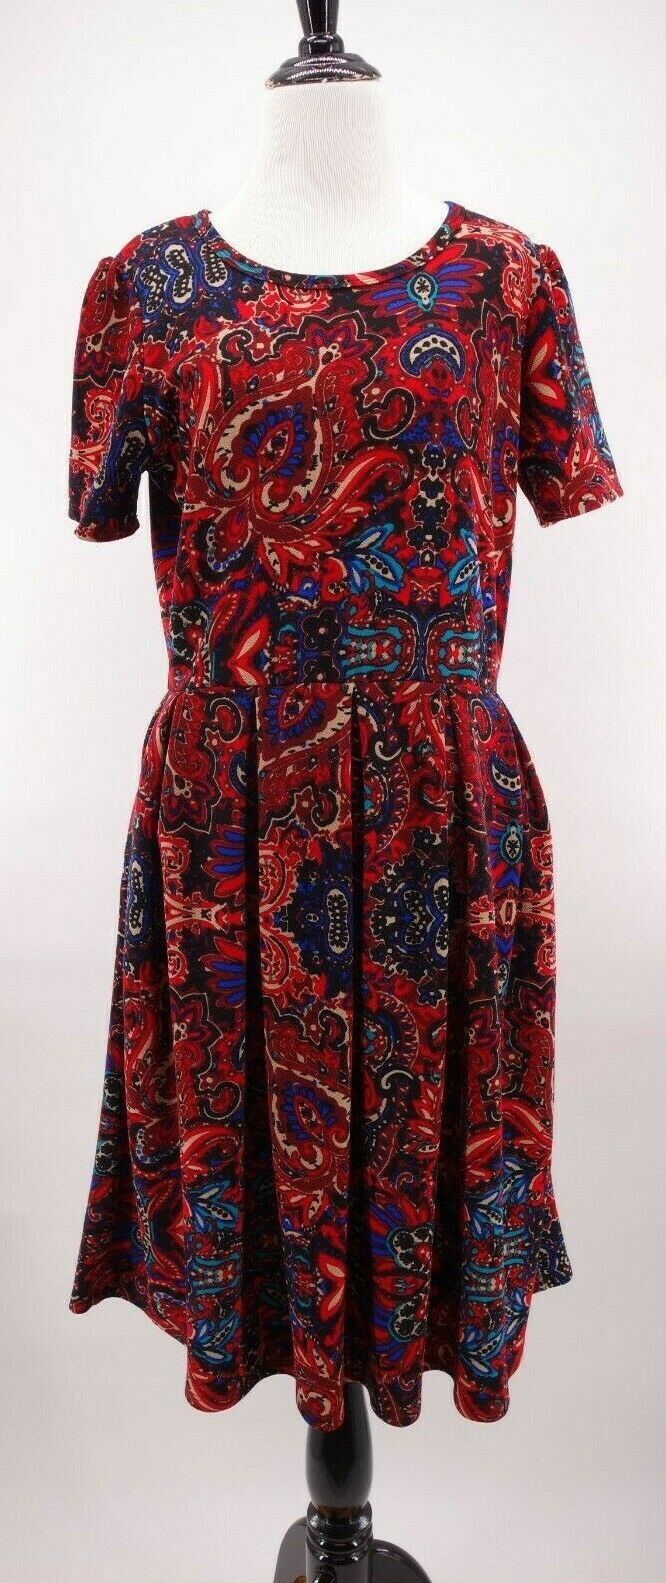 LuLaRoe XL Amelia Tea Dress Exposed Zipper rot Blau Paisley Ikat Baroque Print